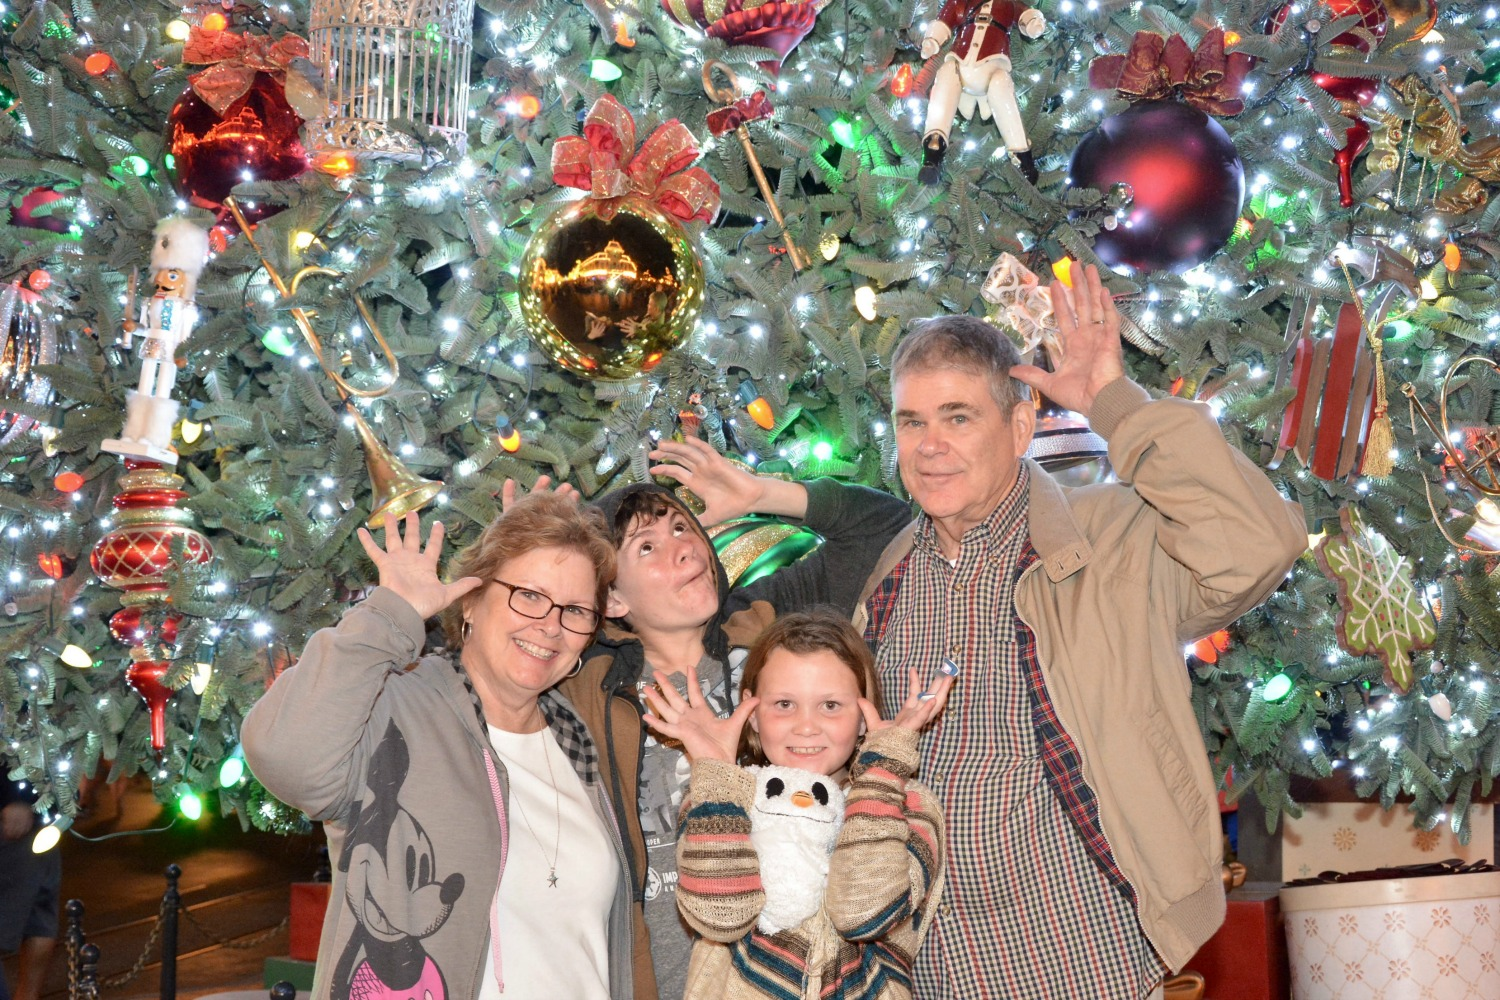 Merry Christmas with the grands at at #DisneylandHolidays - Simple Sojourns